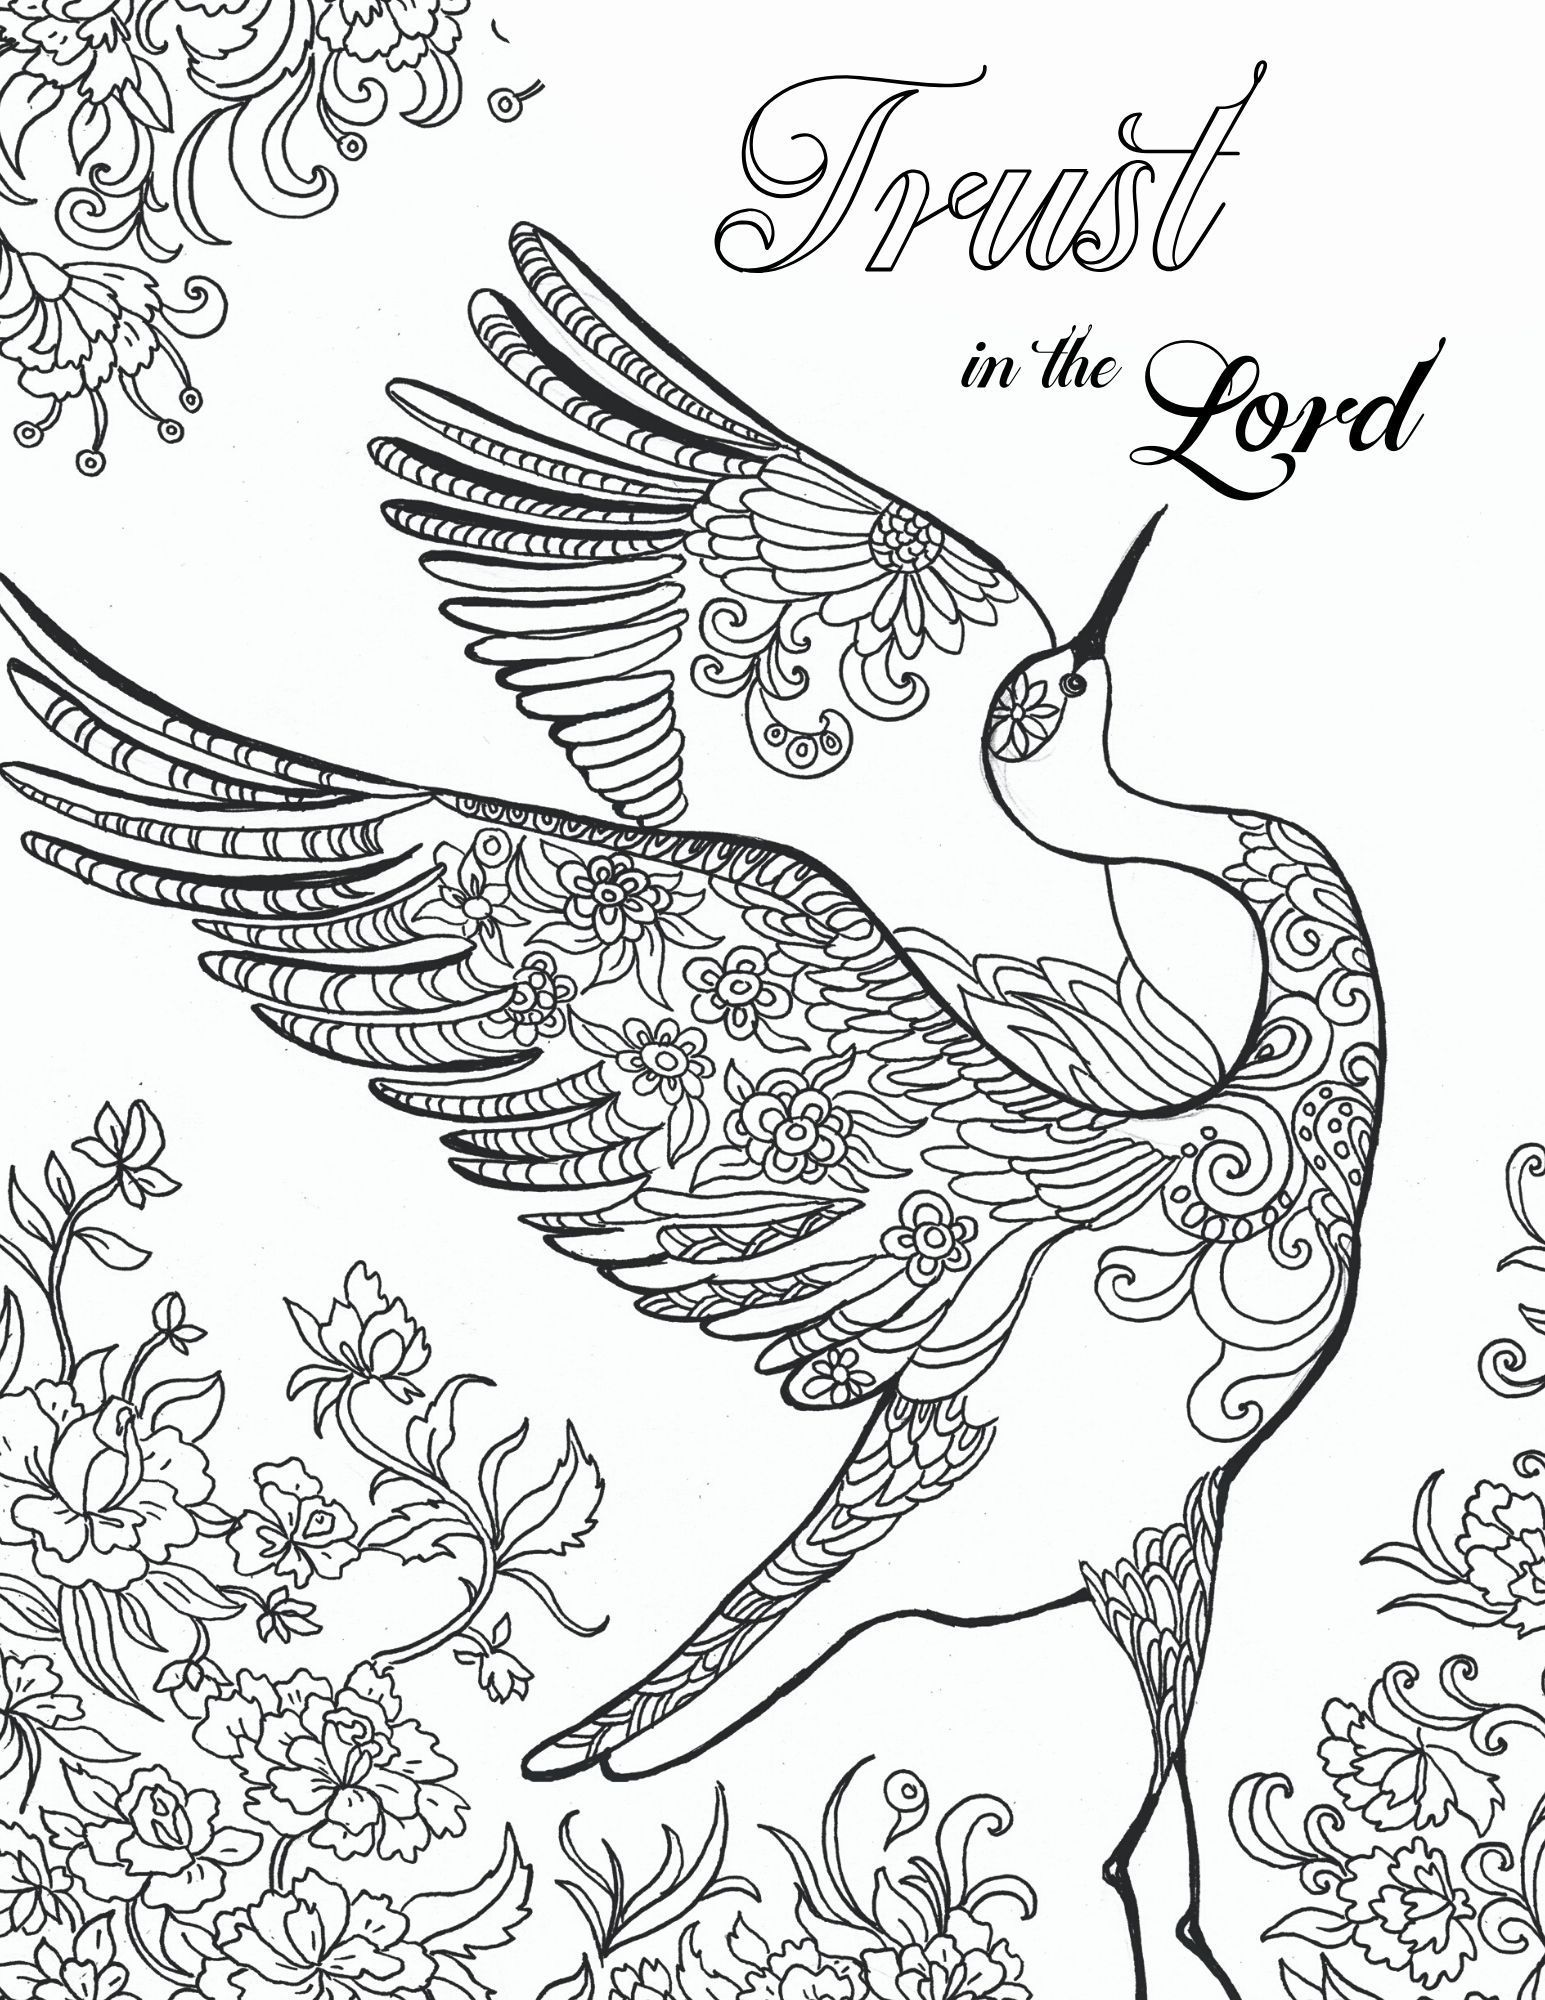 Printables Library Coloring Pages Bible Verse Coloring Page Bible Verse Coloring Bible Coloring Pages